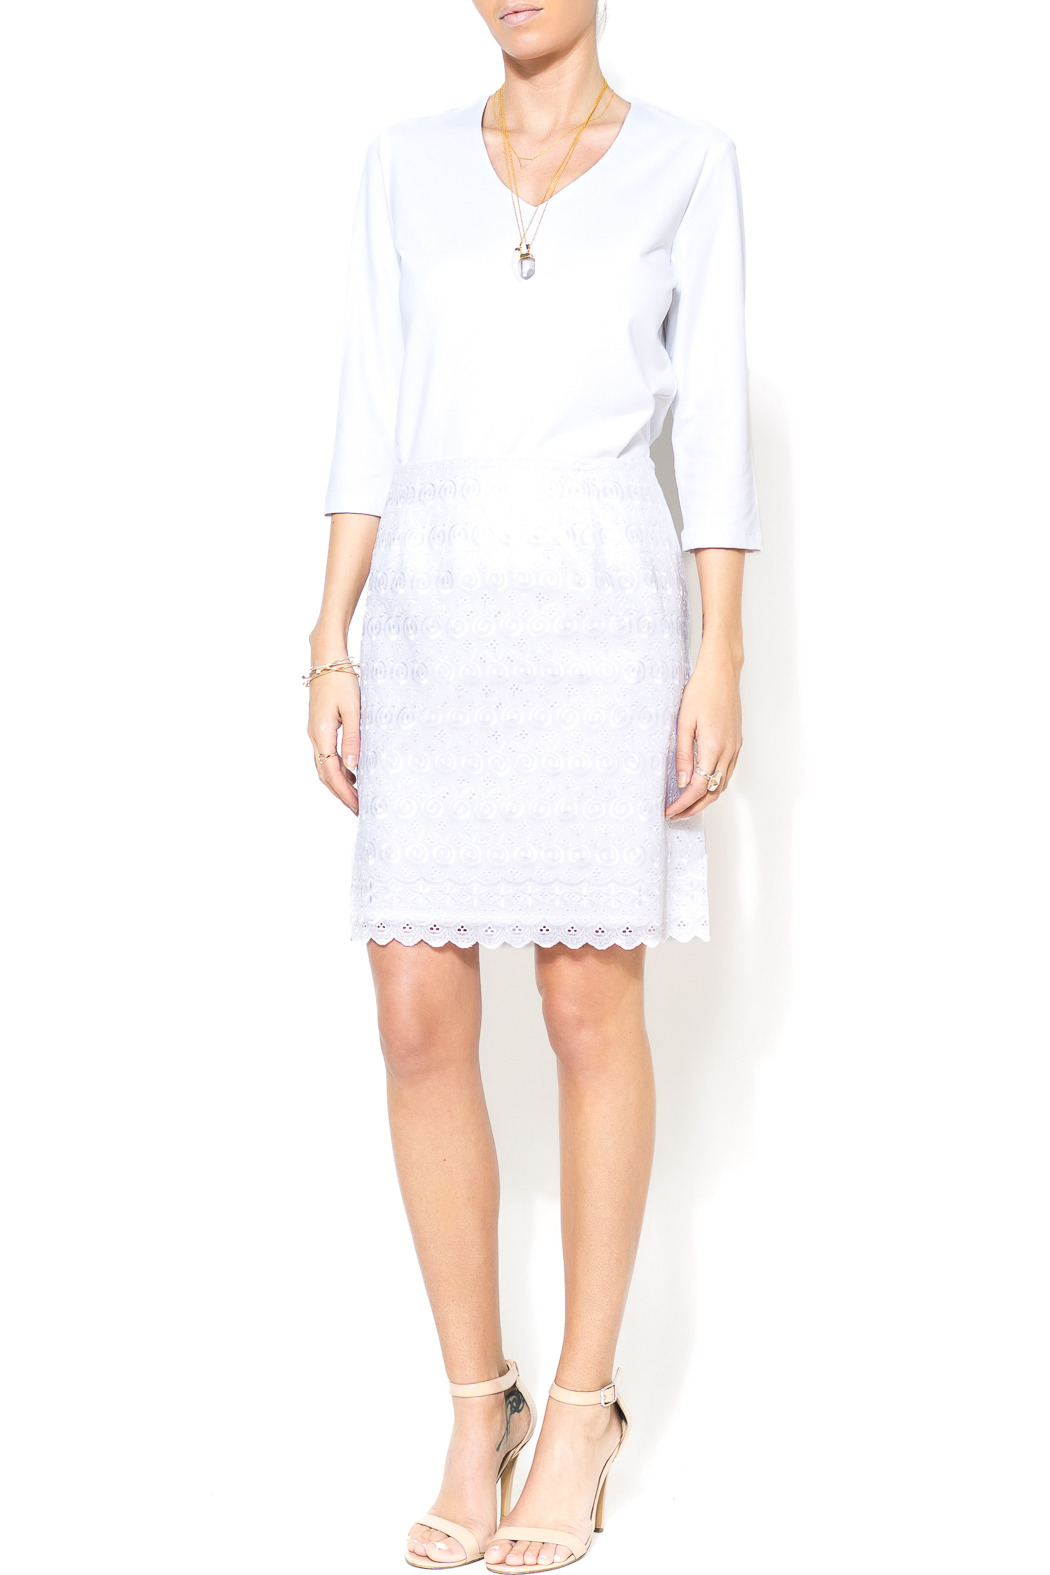 Everyday Lace White Skirt